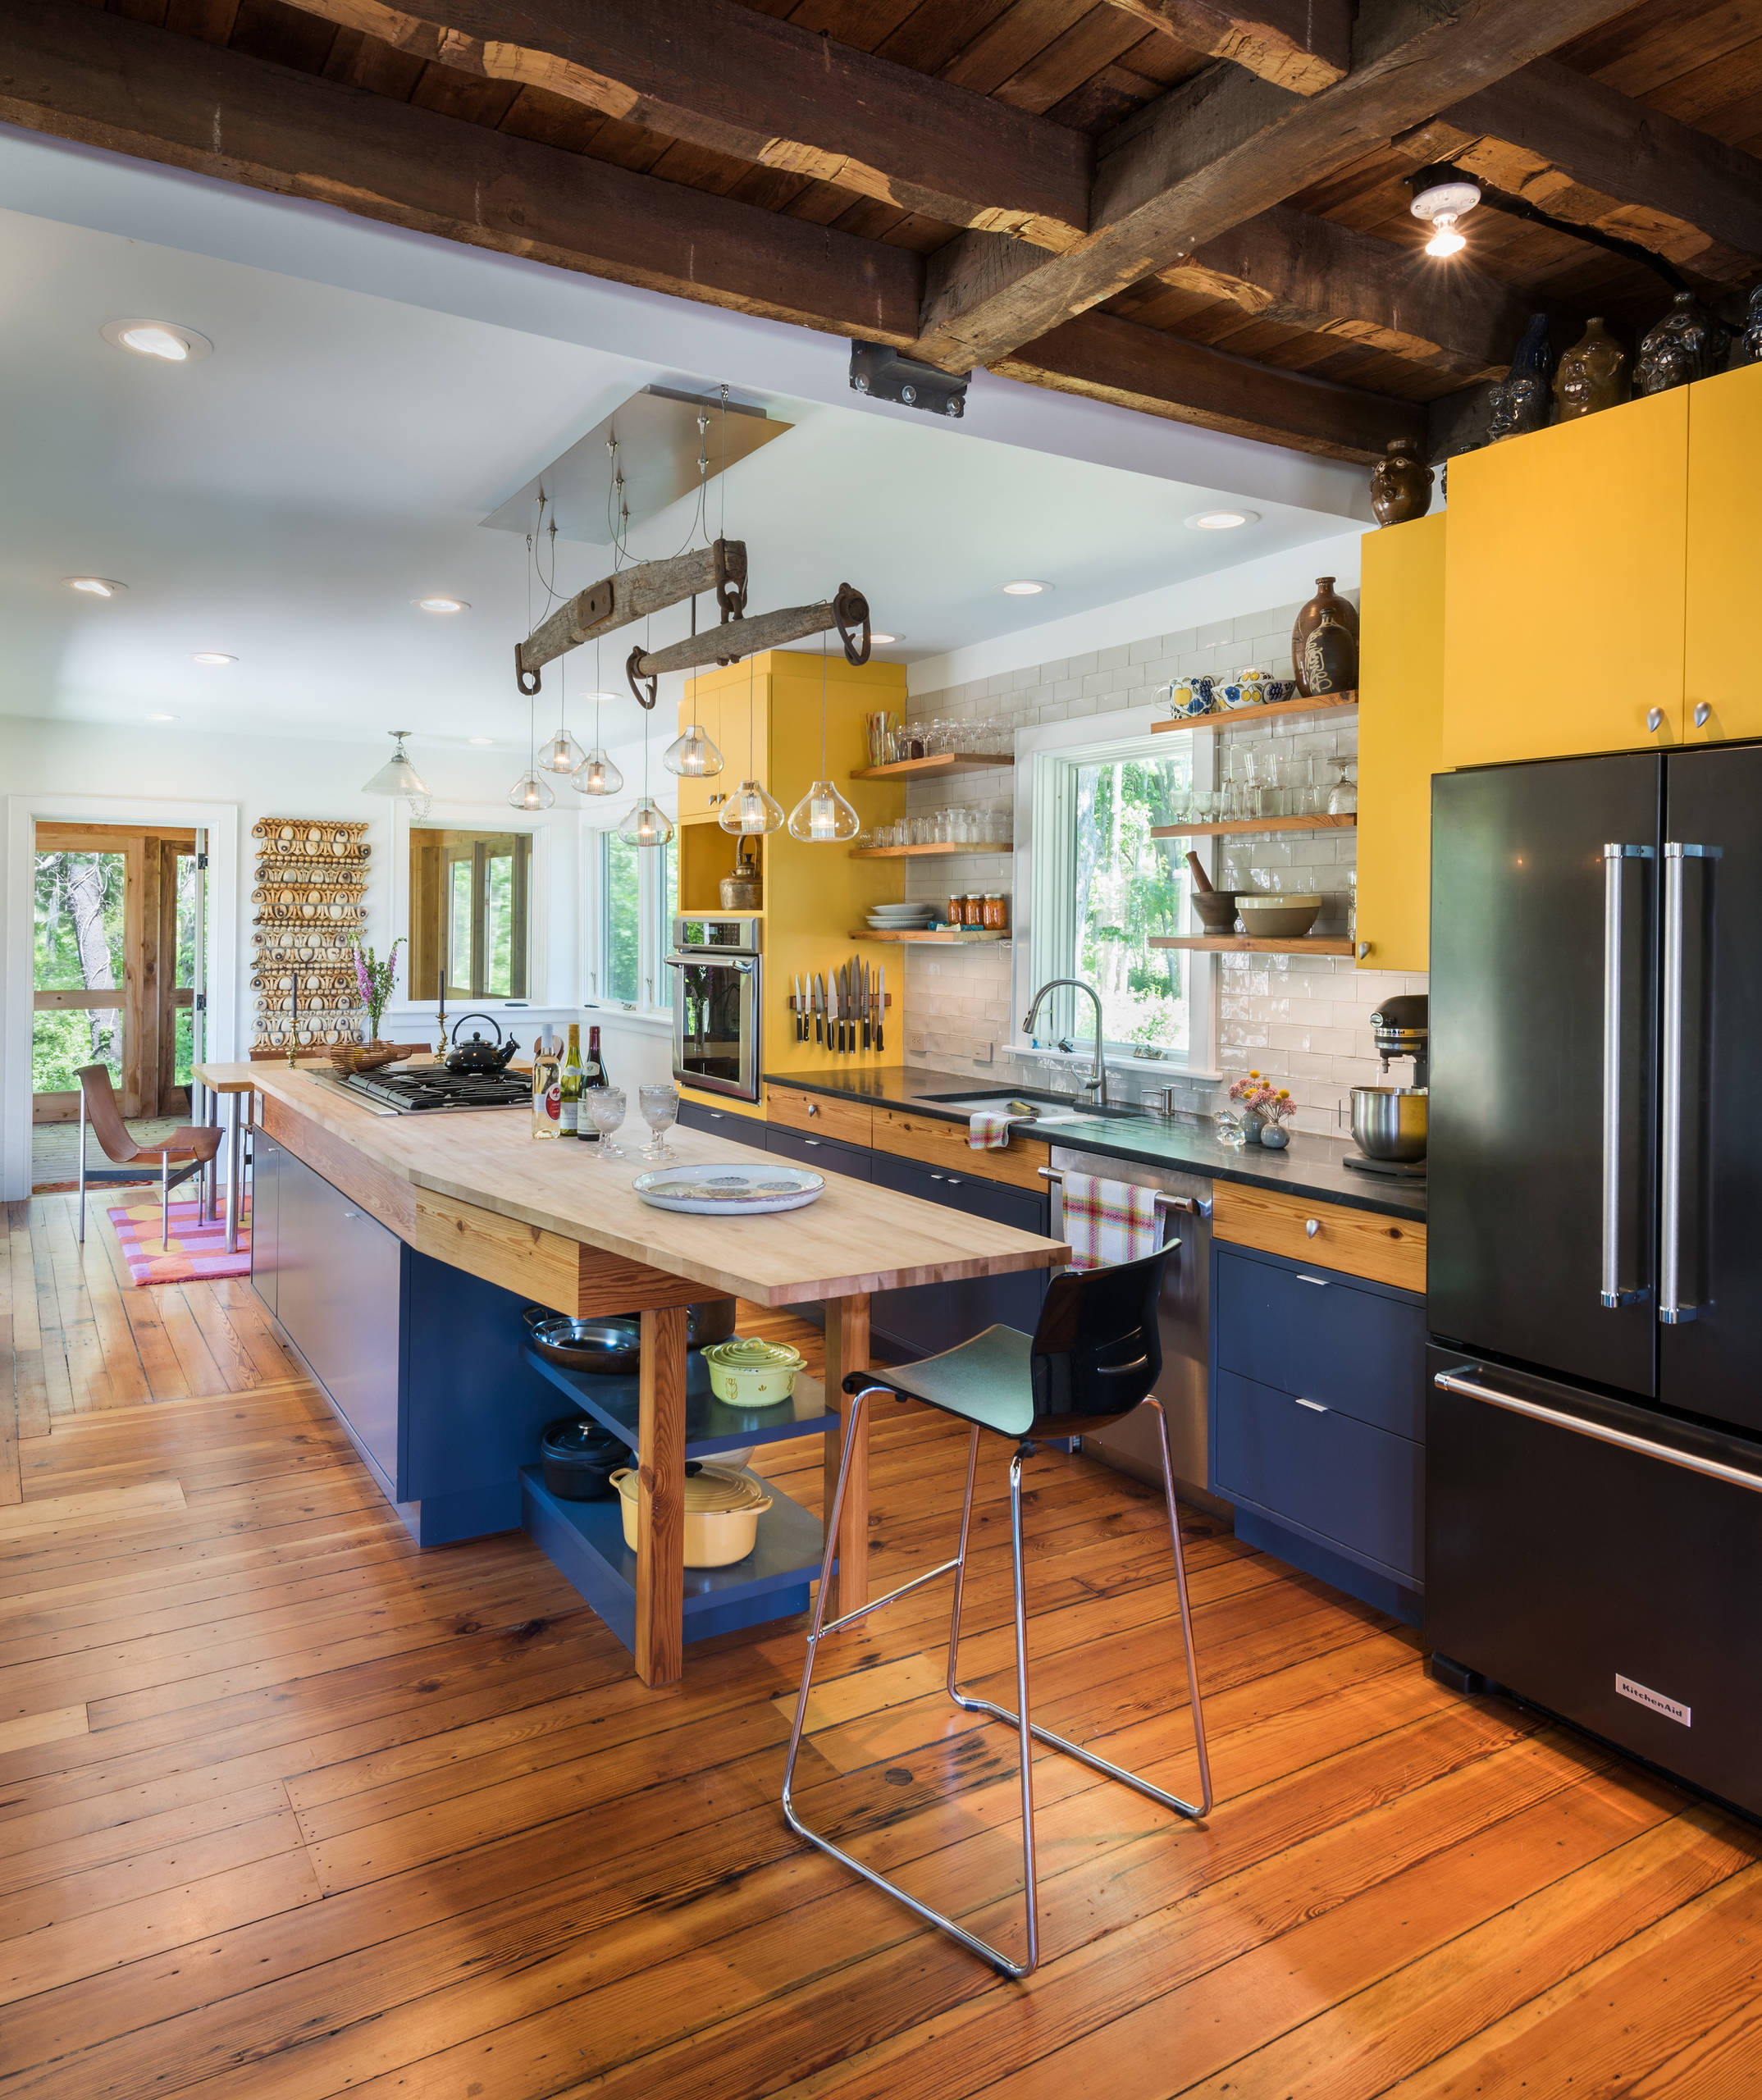 75 Beautiful Kitchen With Yellow Cabinets And Black Appliances Pictures Ideas May 2021 Houzz